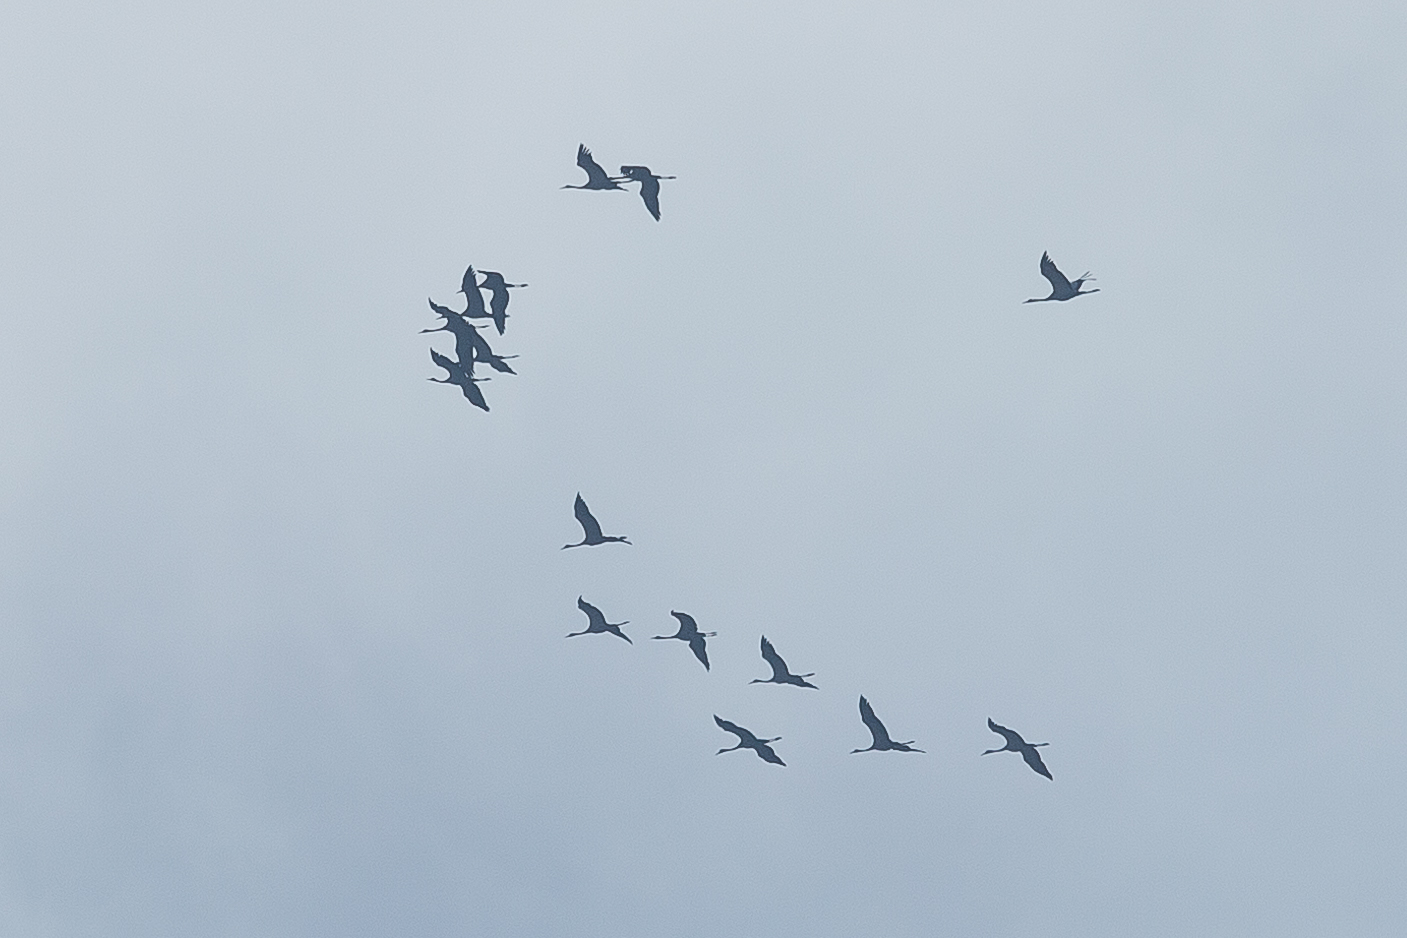 Crappy record shot of the group of 15 Cranes